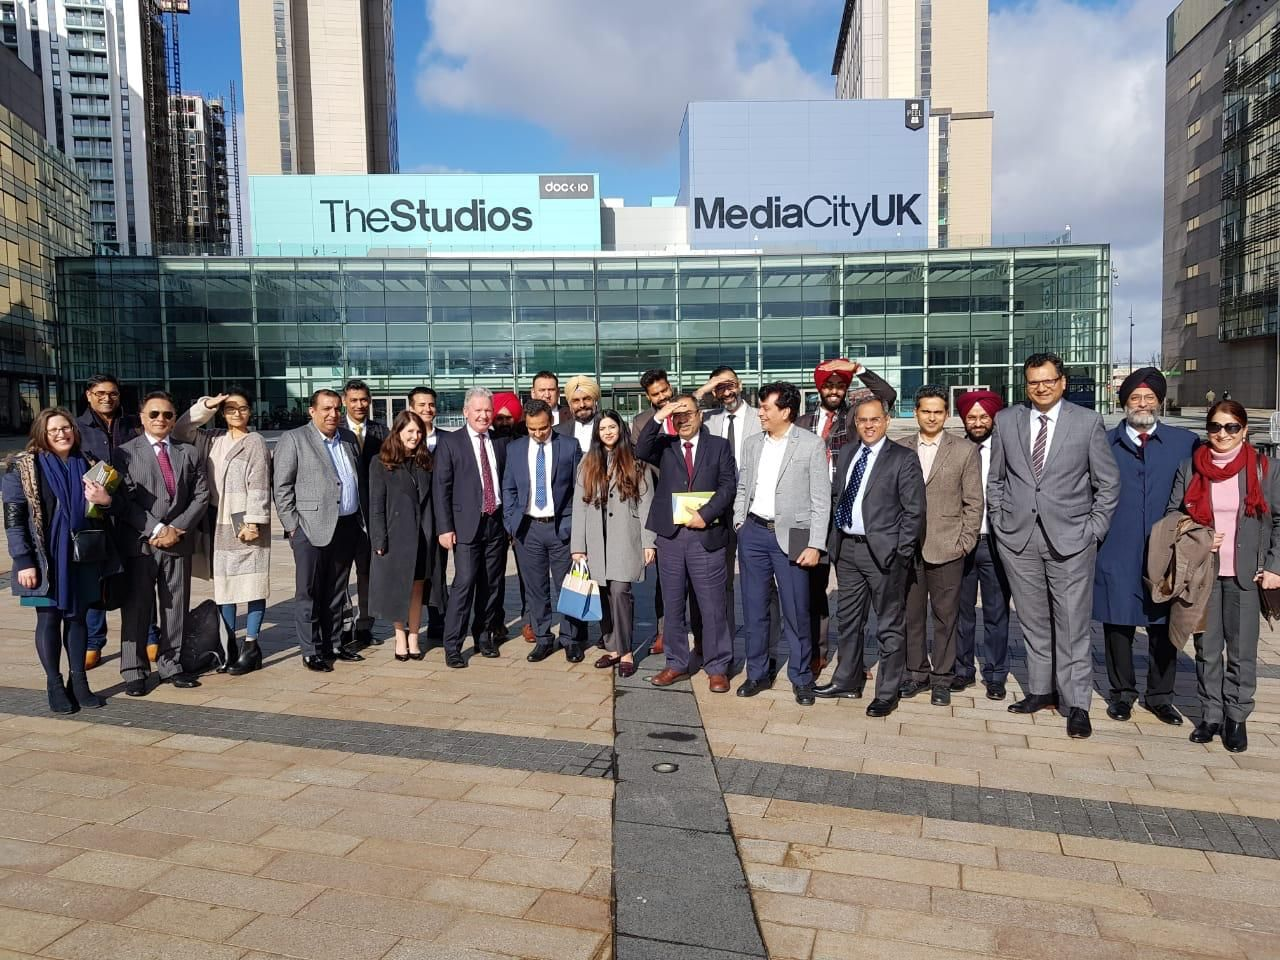 Chandigarh It Ceo Delegation Visits Manchester City On Day 1 With Images Visit Manchester Manchester City Delegation